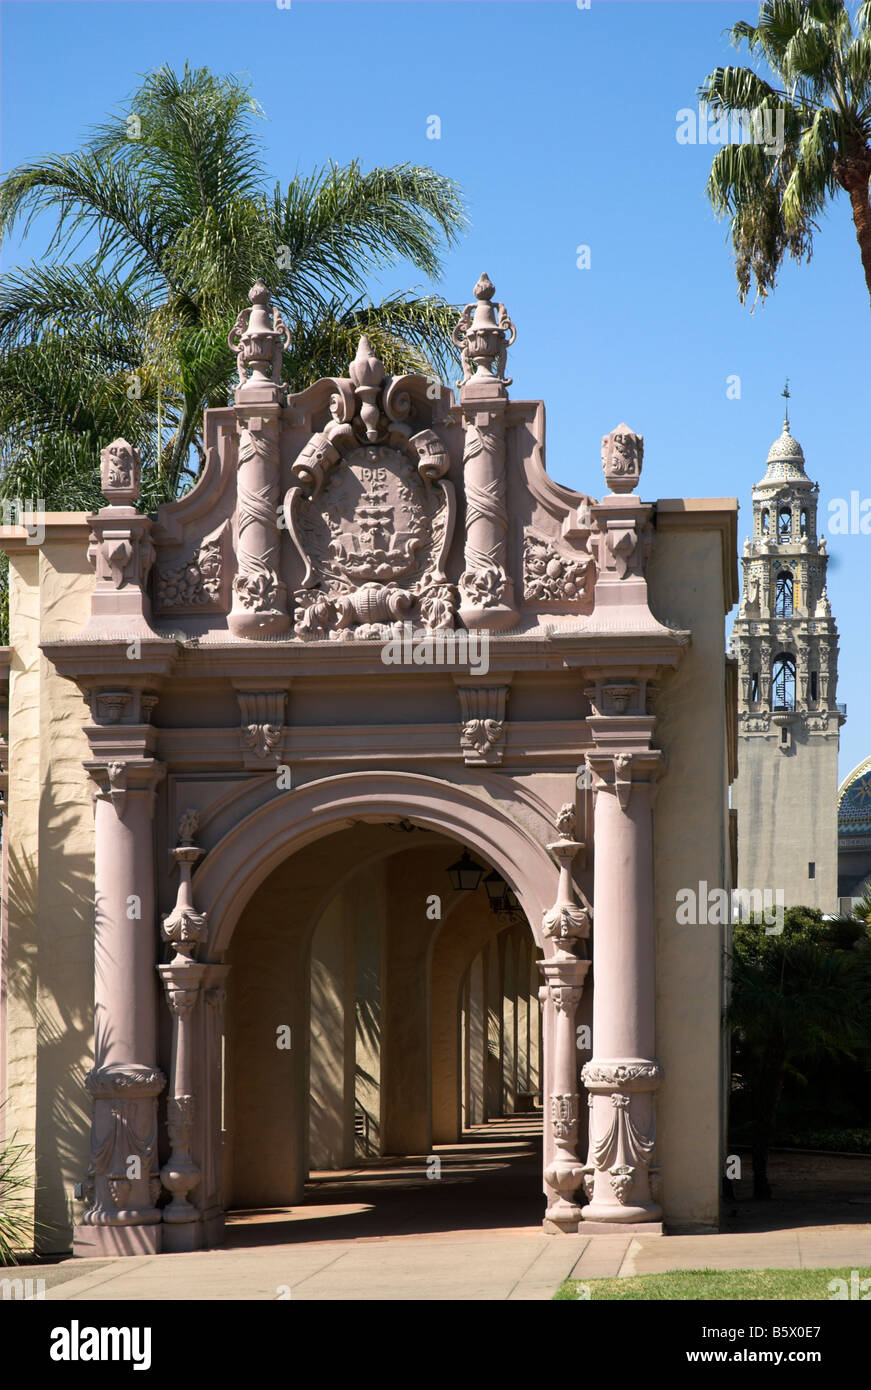 Arches over the sidewalk that parallels 'El Prado' in Balboa Park, San Diego, California, USA - Stock Image